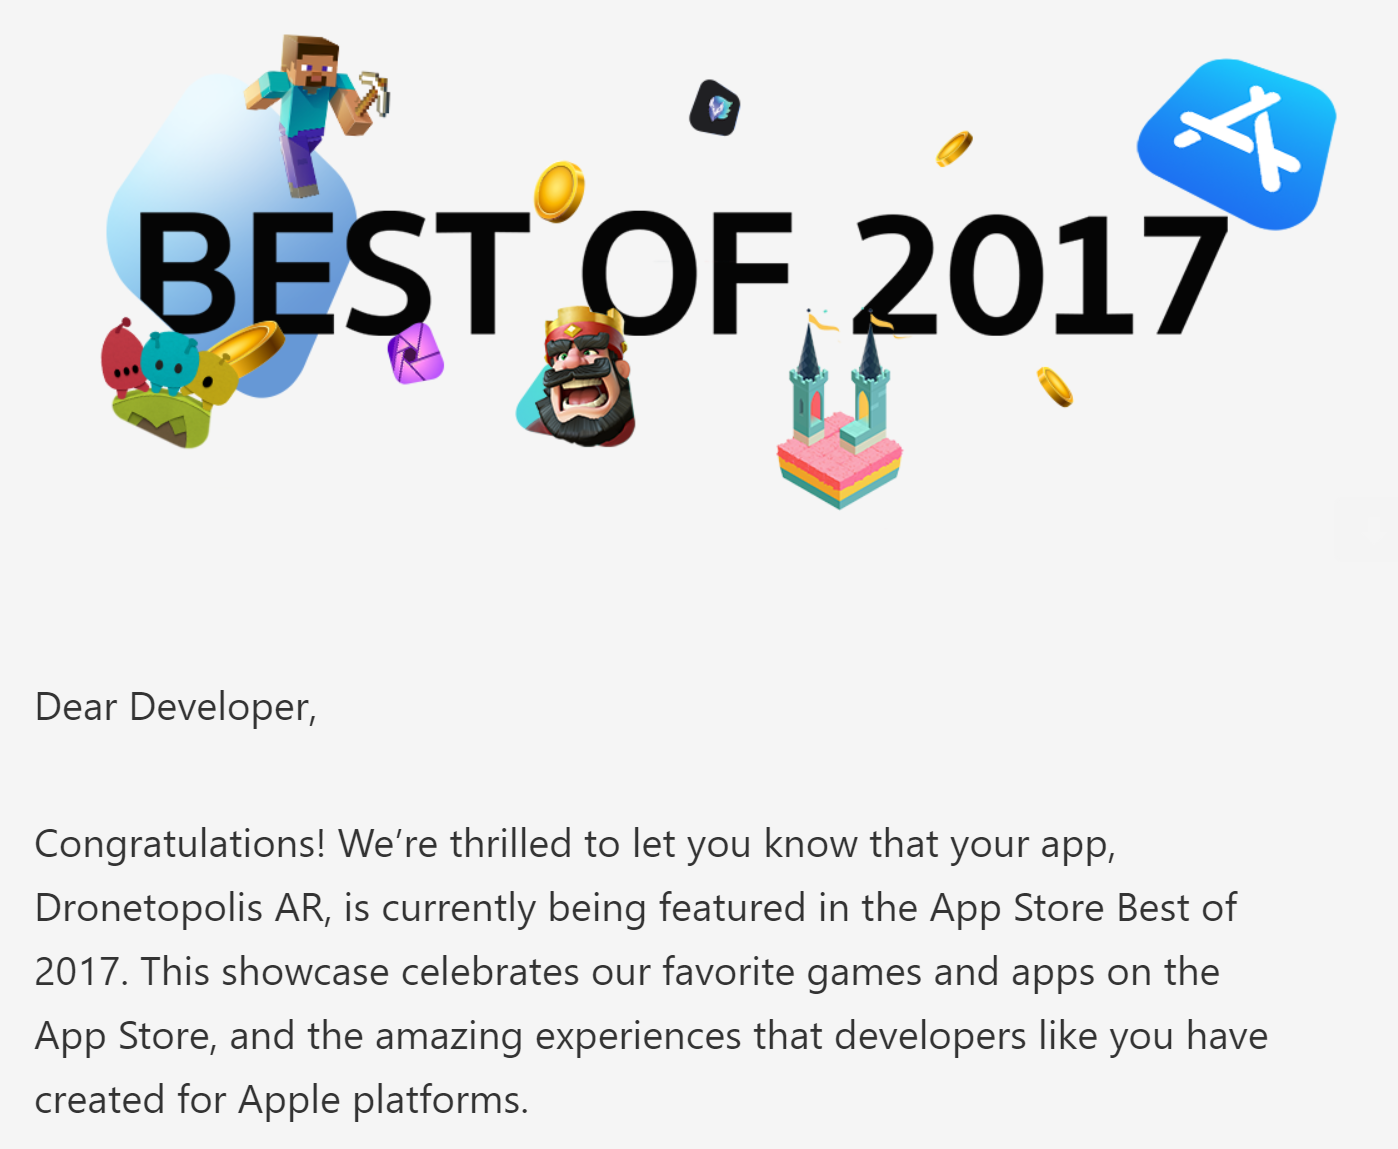 DroneTopolis AR  among Apple's Best of 2017